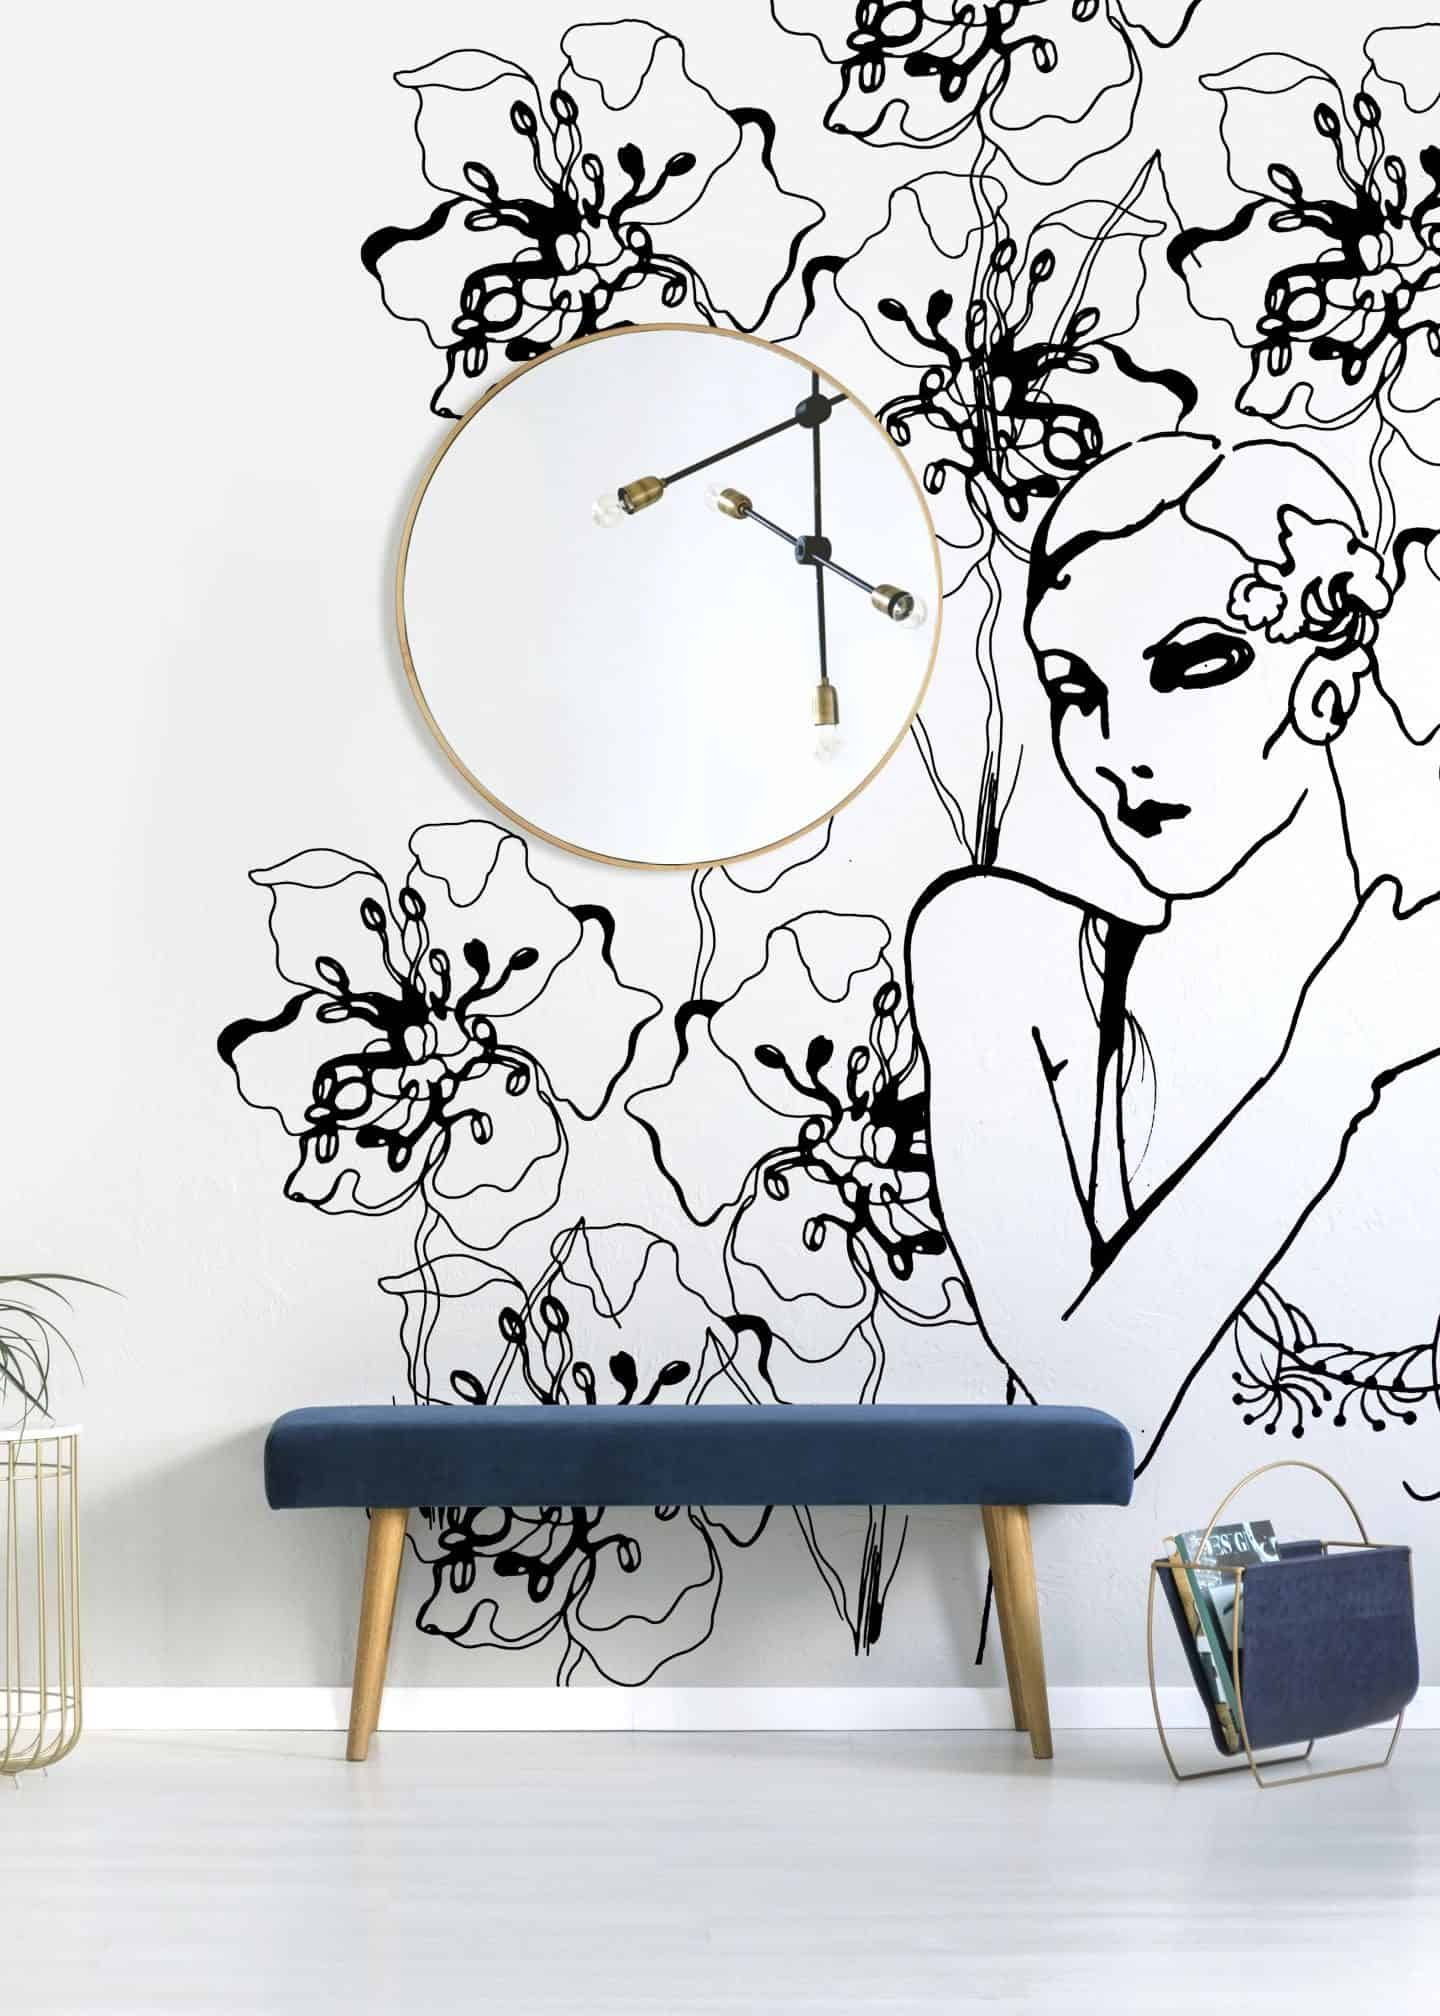 1920s fashion, a black and white fashion illustration by Stina Wirsén available as a illustrated wallpaper from Photowall.